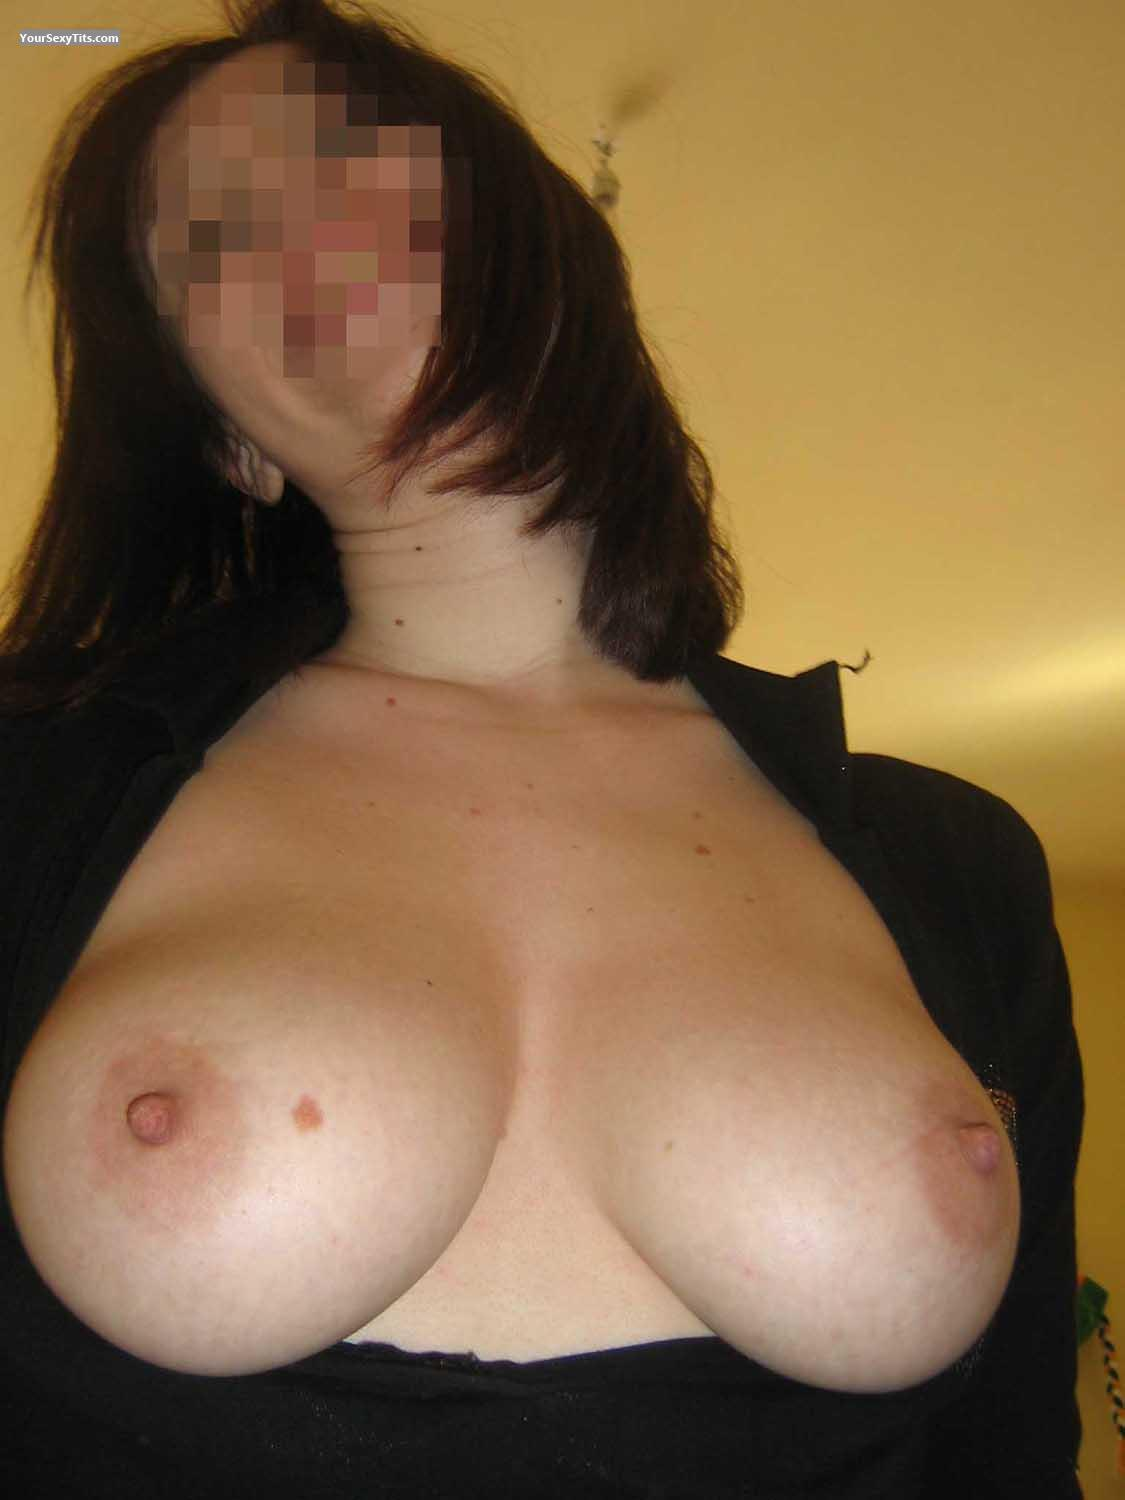 Tit Flash: Big Tits - Assso from Italy